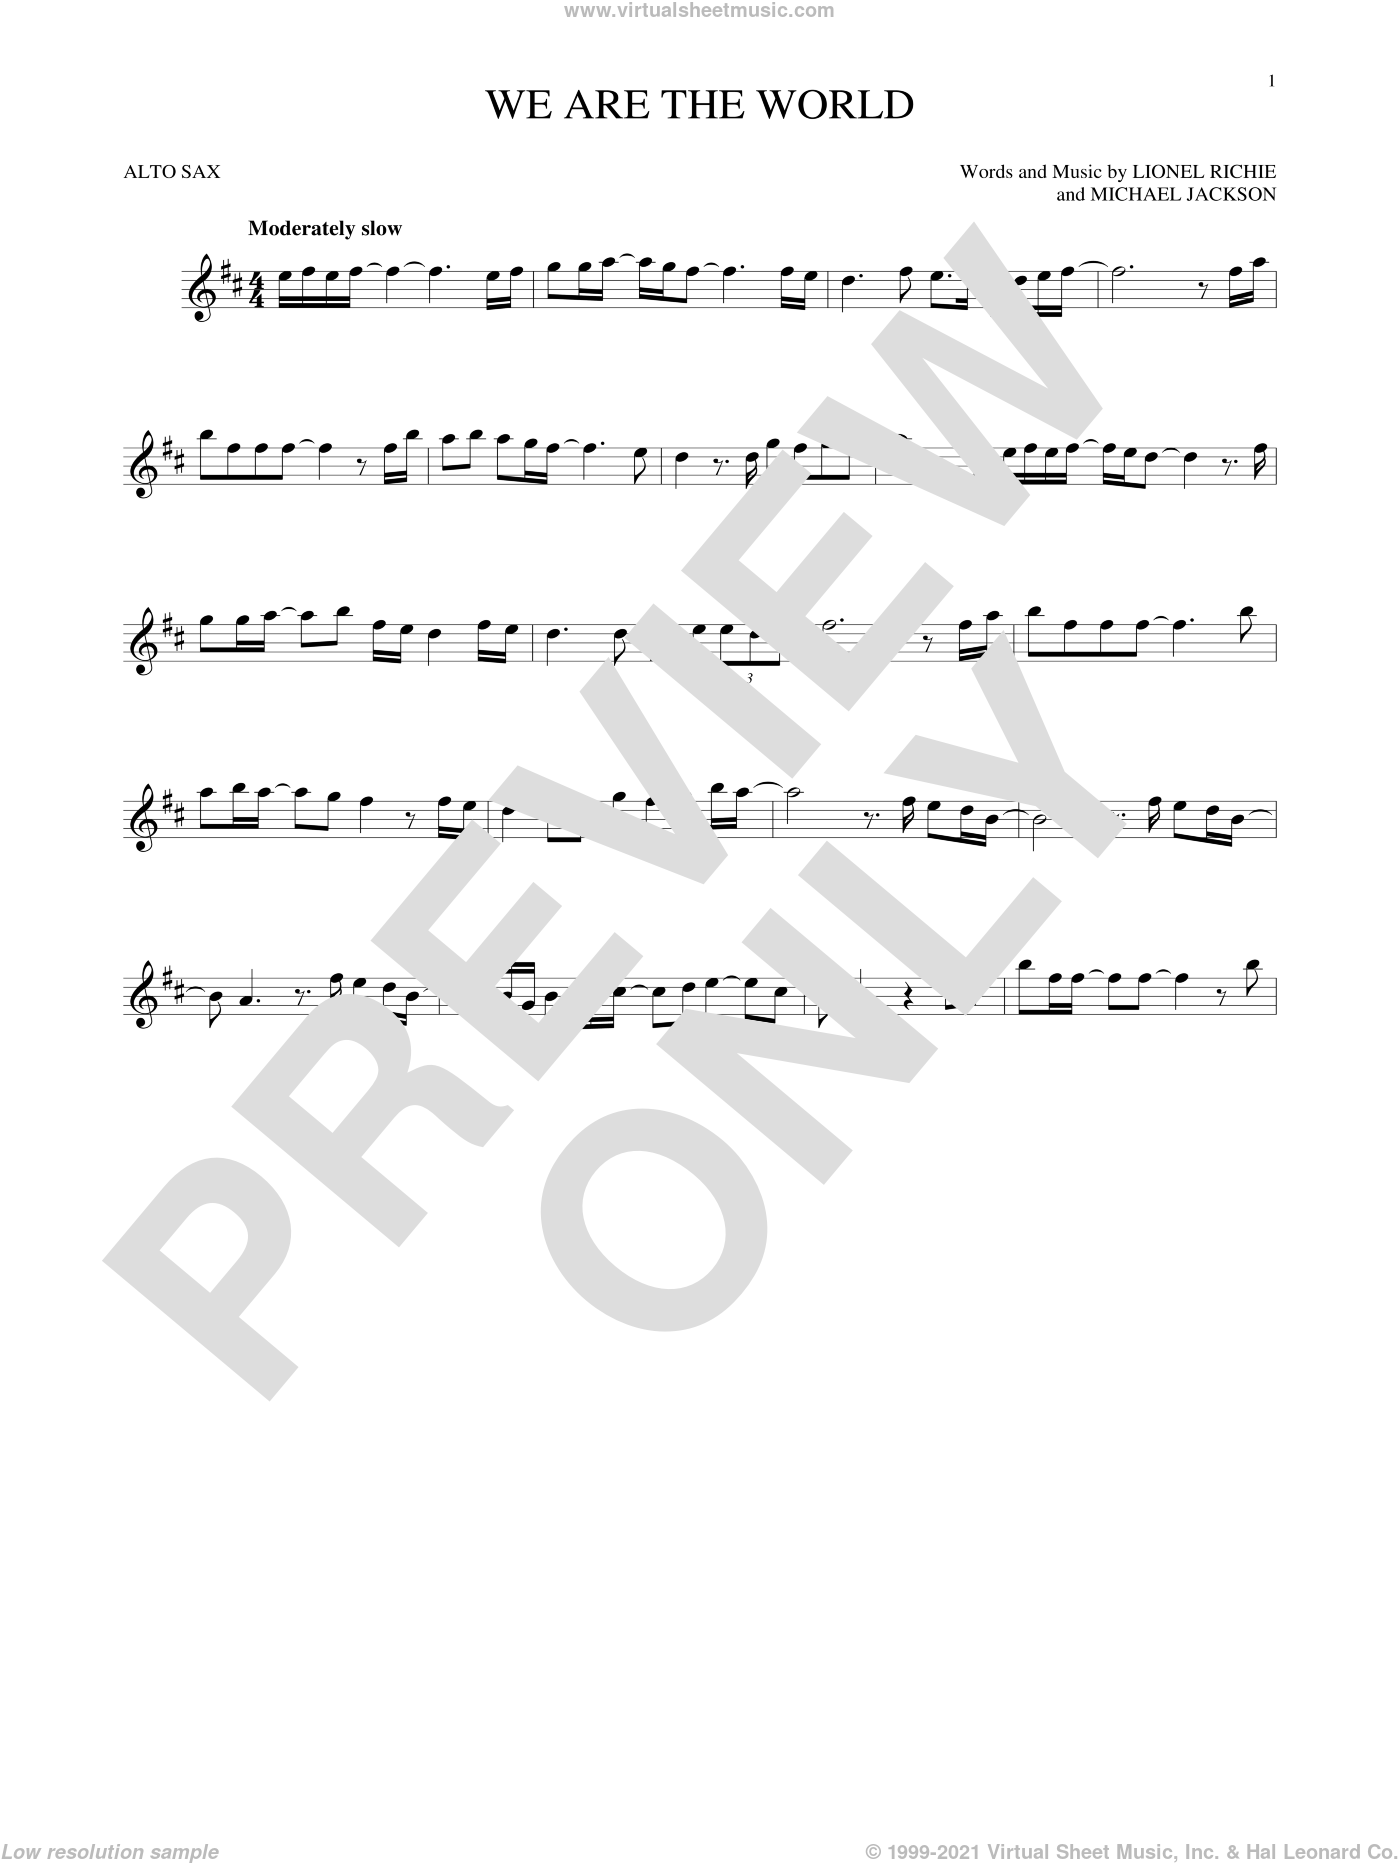 We Are The World sheet music for alto saxophone solo by Michael Jackson, USA For Africa, Lionel Richie and Lionel Richie & Michael Jackson, intermediate skill level